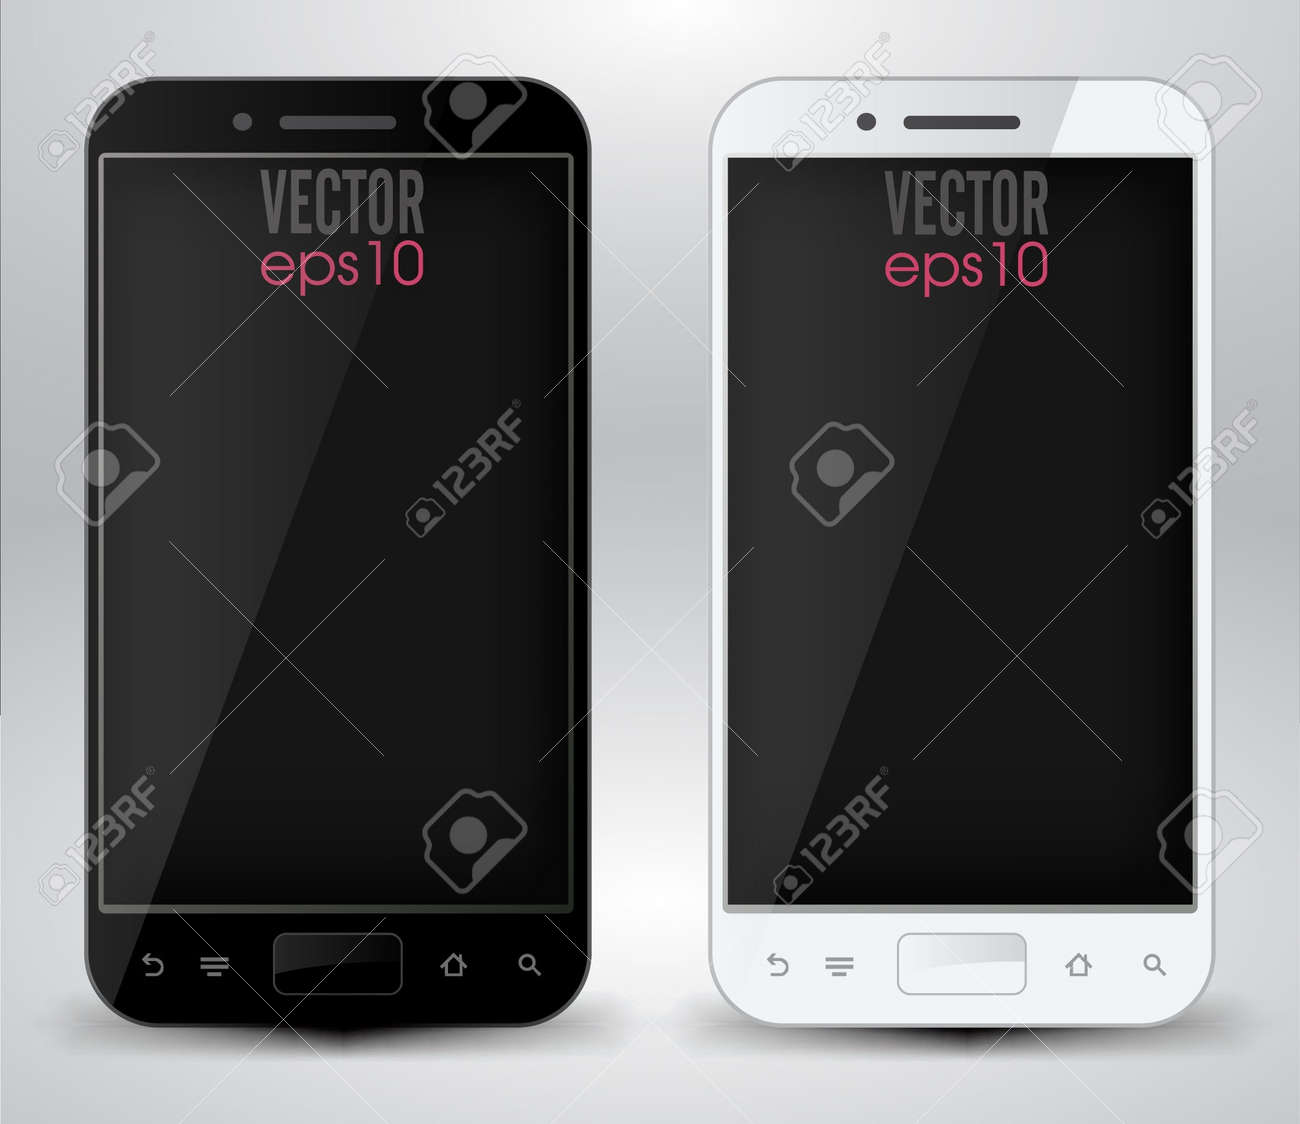 Smartphones Stock Vector - 21056873